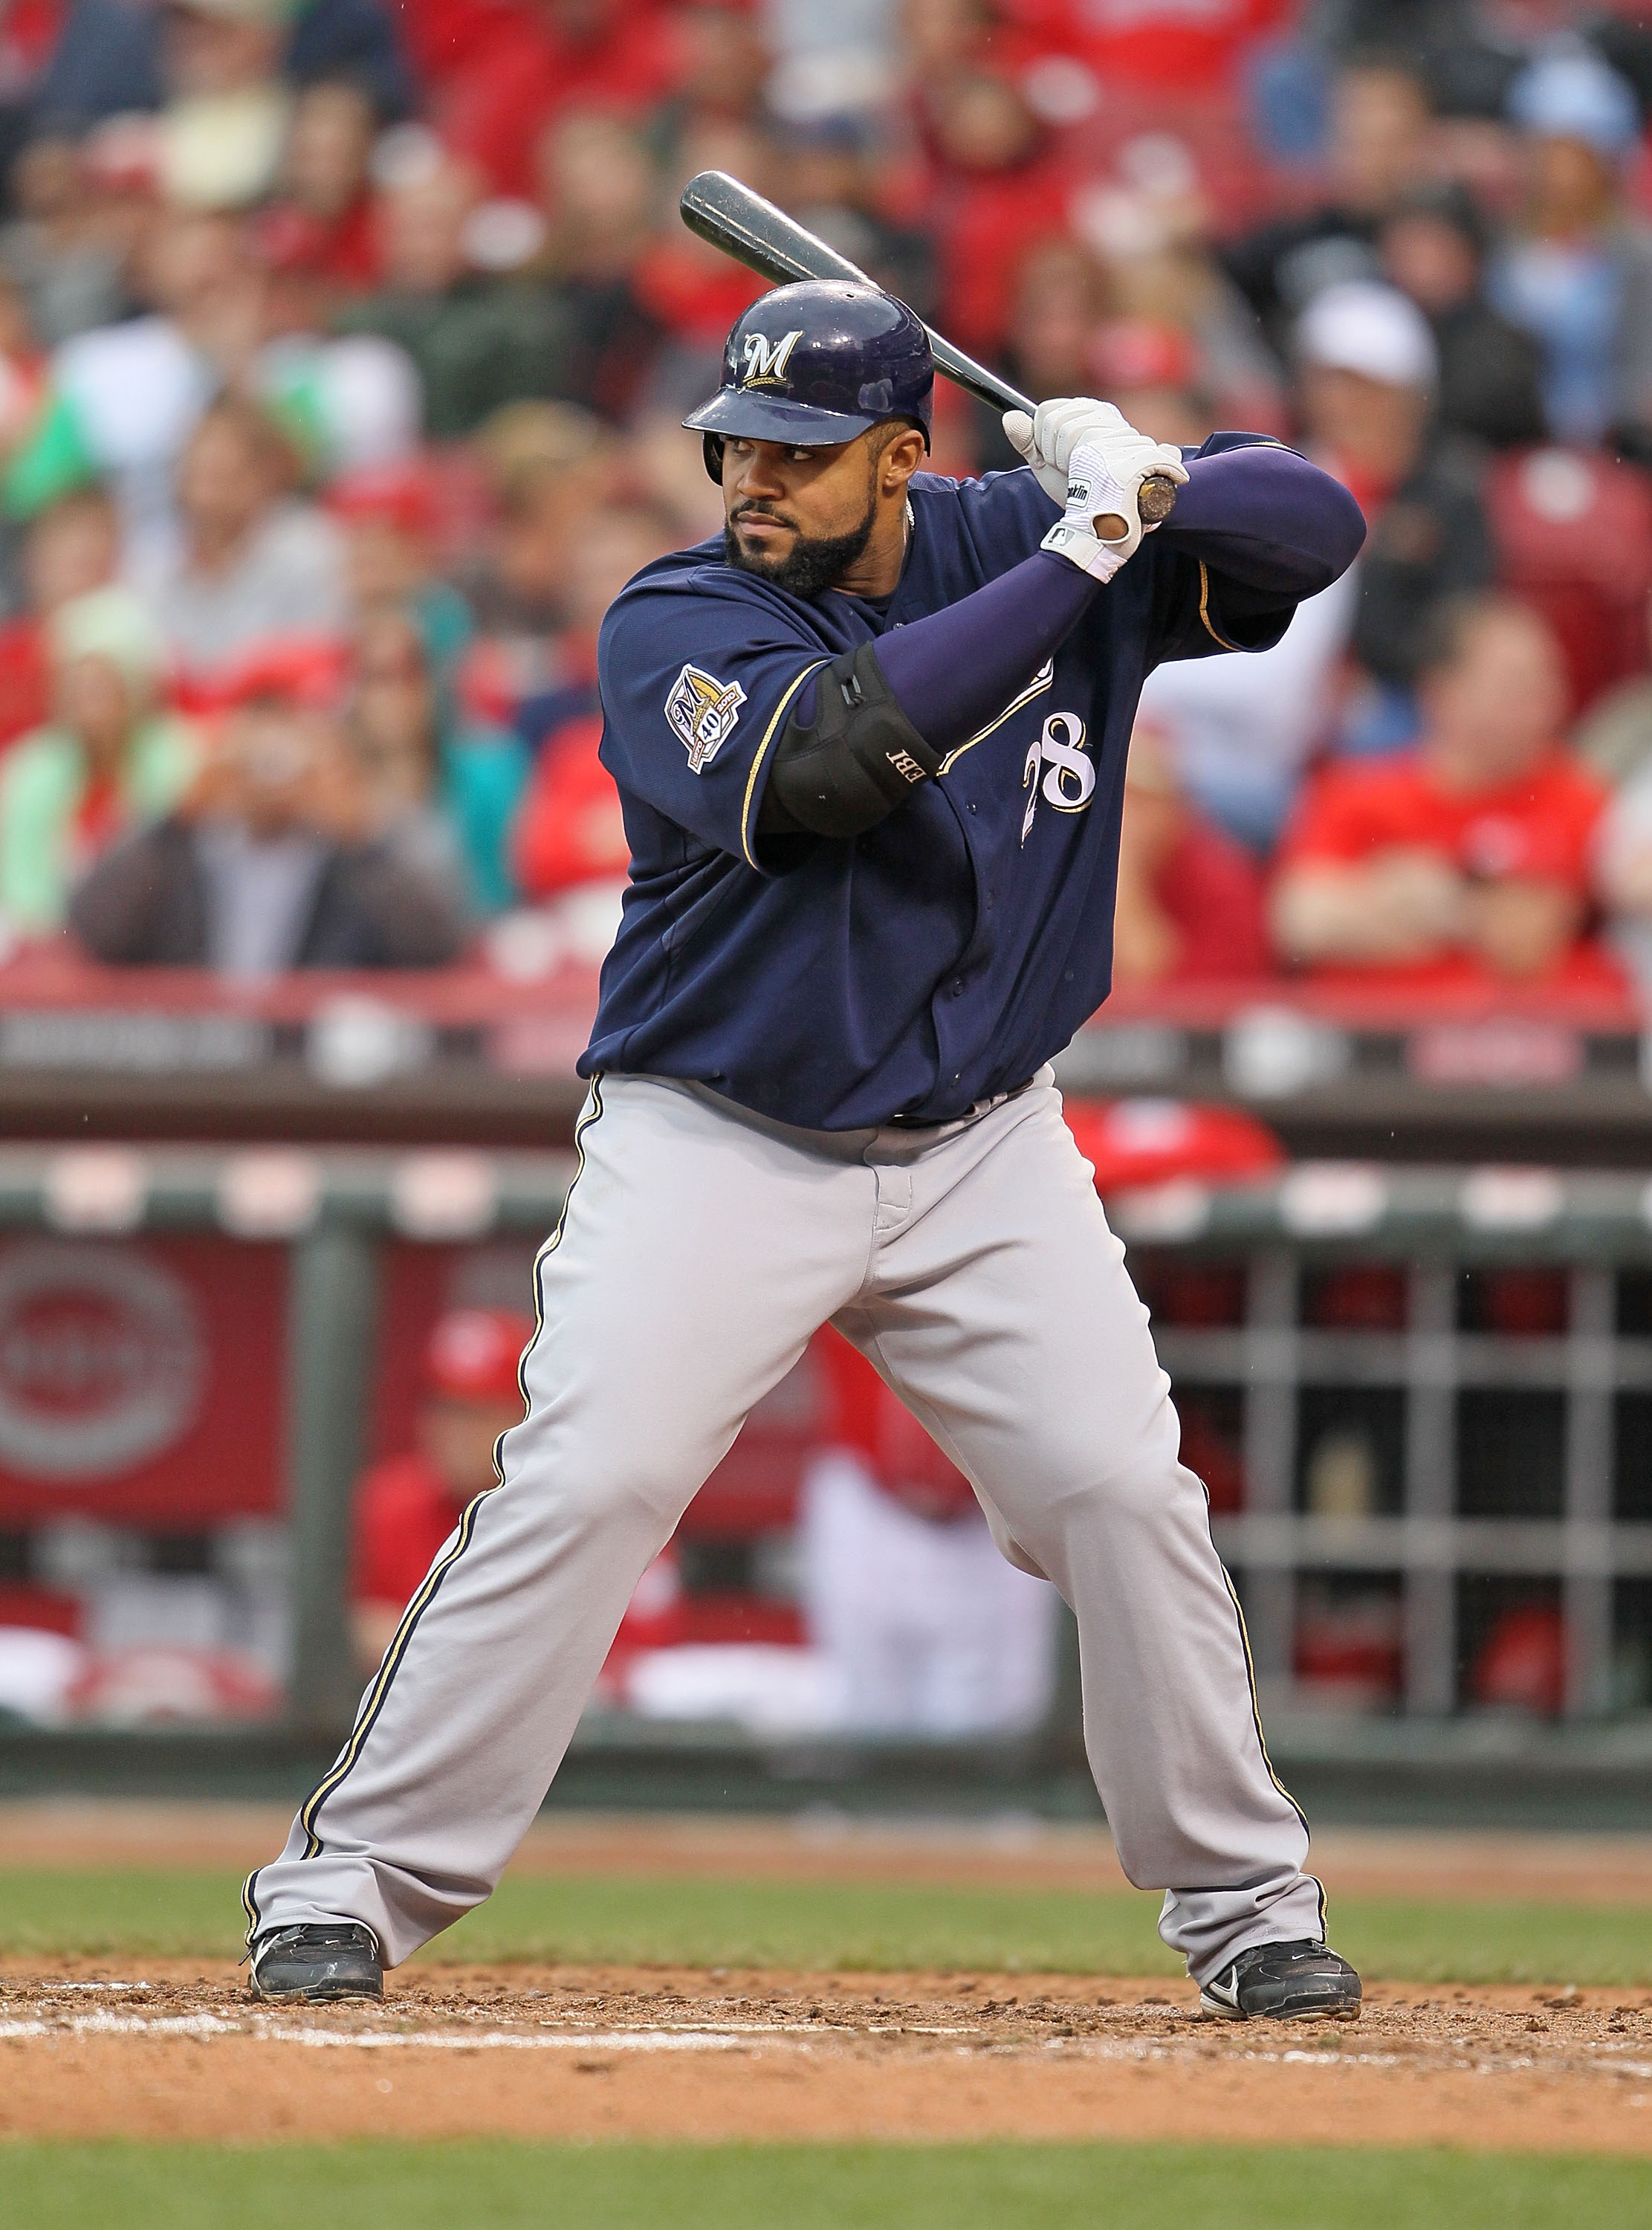 ff1fc1c2e2d6 CINCINNATI - MAY 18  Prince Fielder  28 of the Milwaukee Brewers is at bat